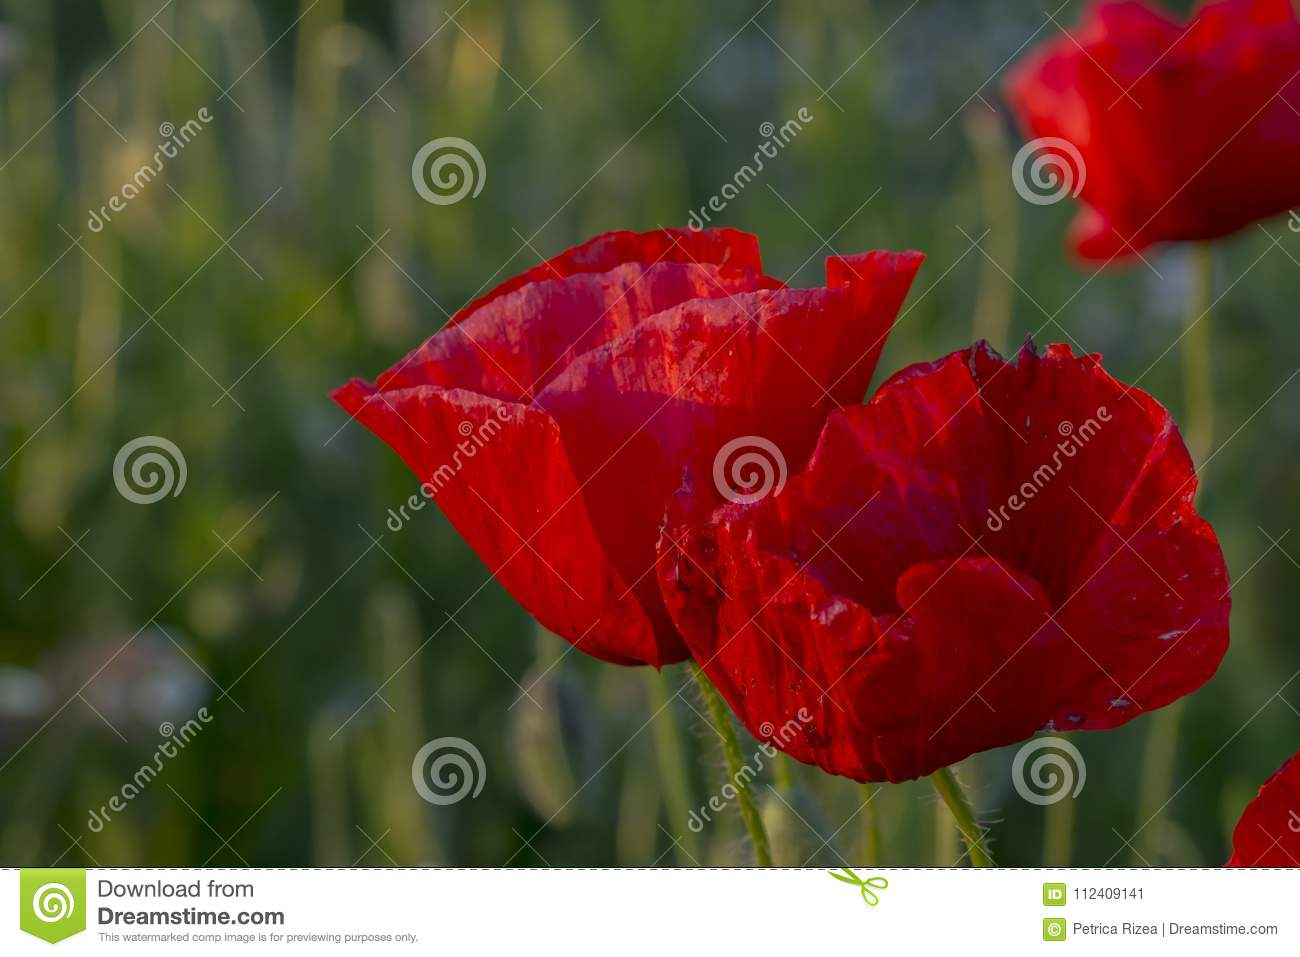 Flowers Red Poppies Blossom Close Up Poppy Head Red Poppy Flower